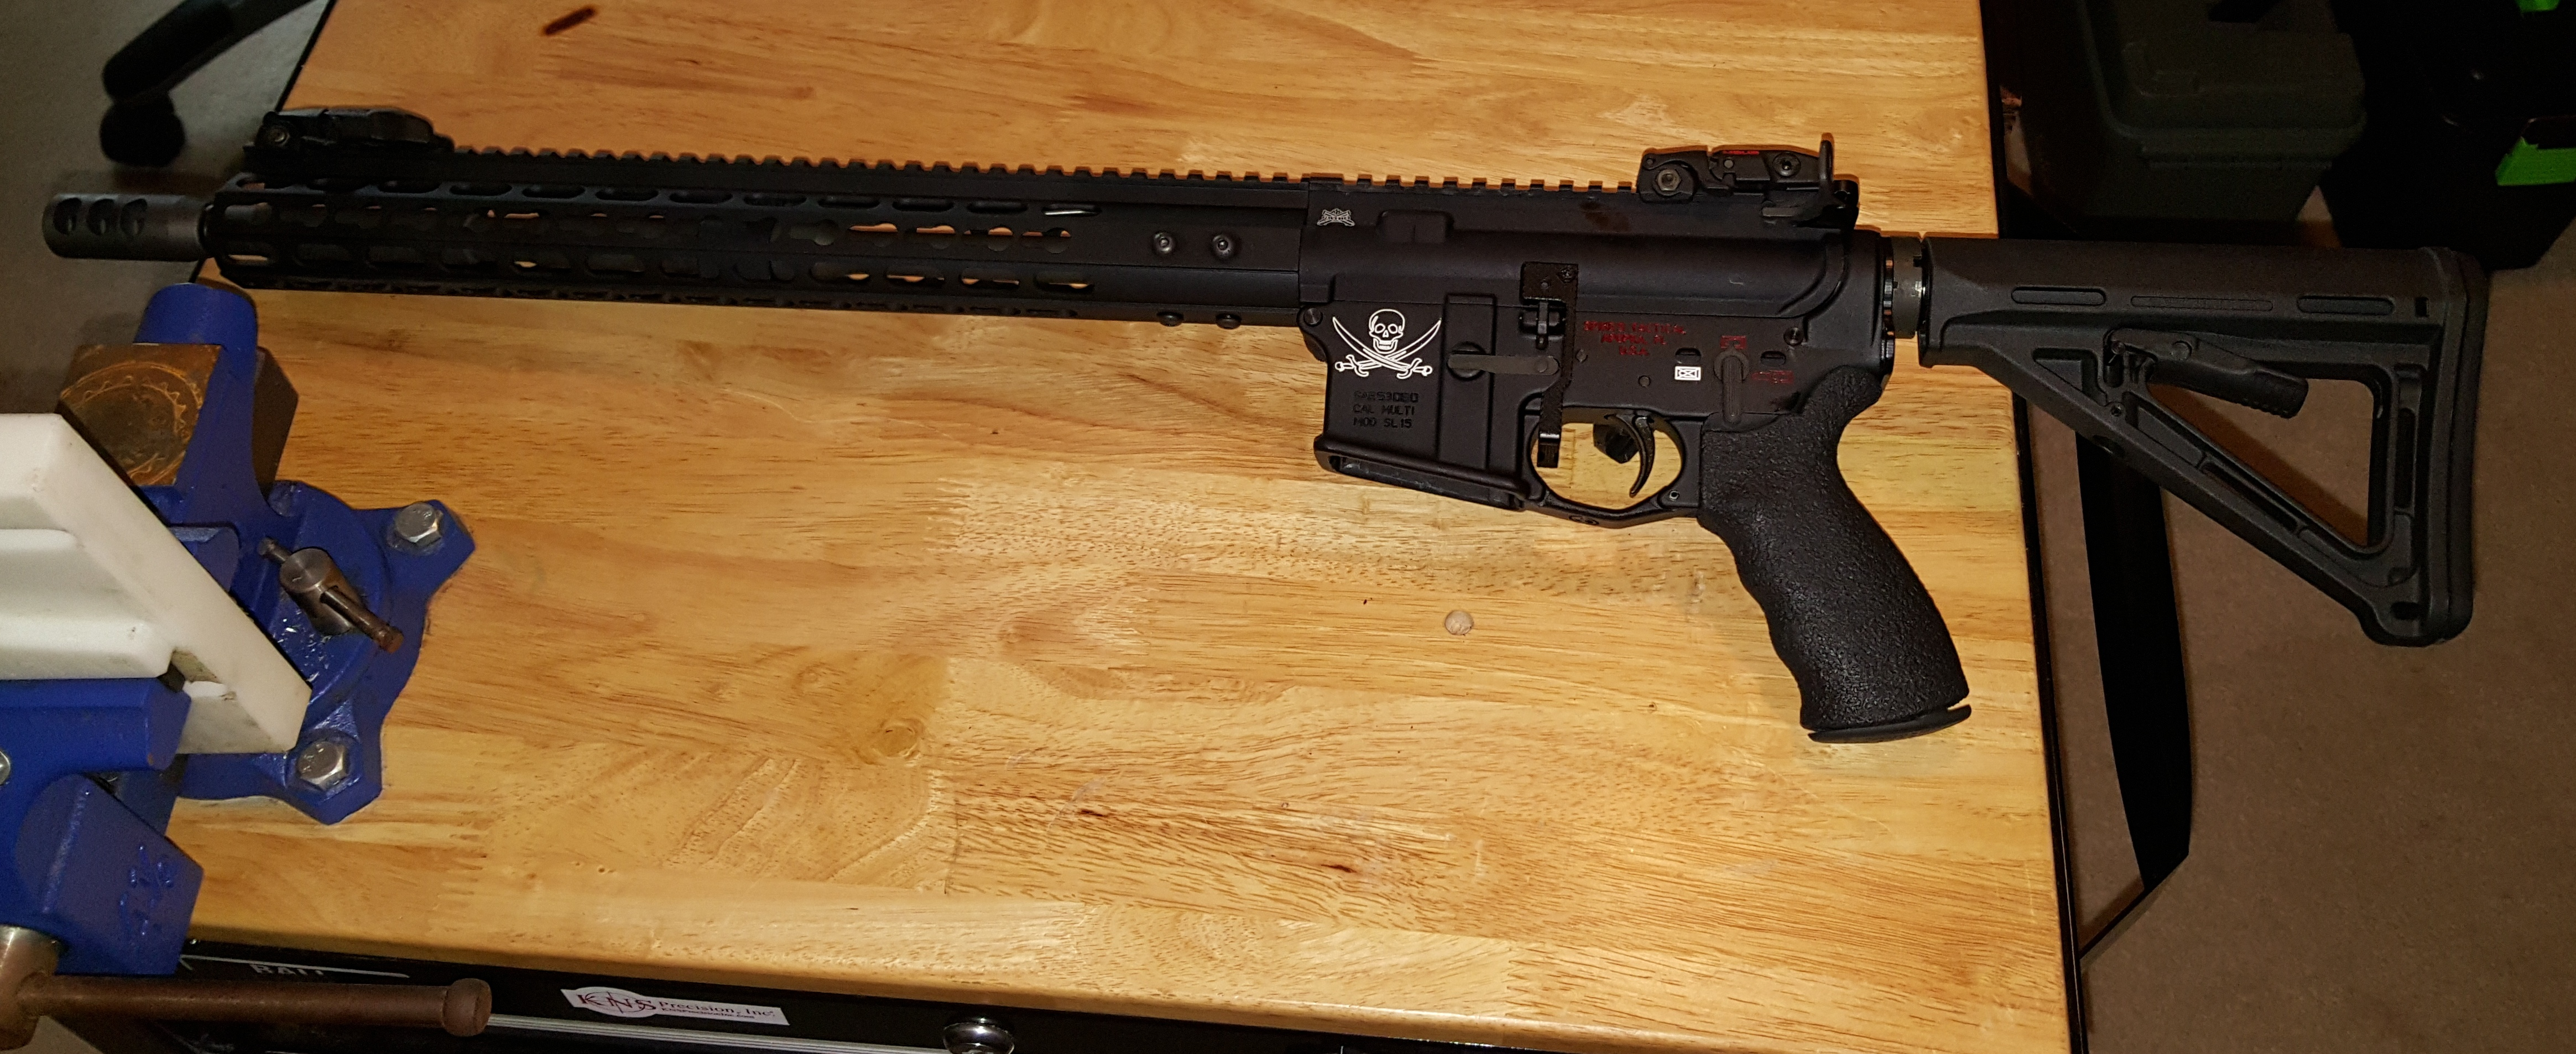 Rousch Sports Customer Build Page AR15 M16 M4 Austin Texas Best Discount Prices R Knight